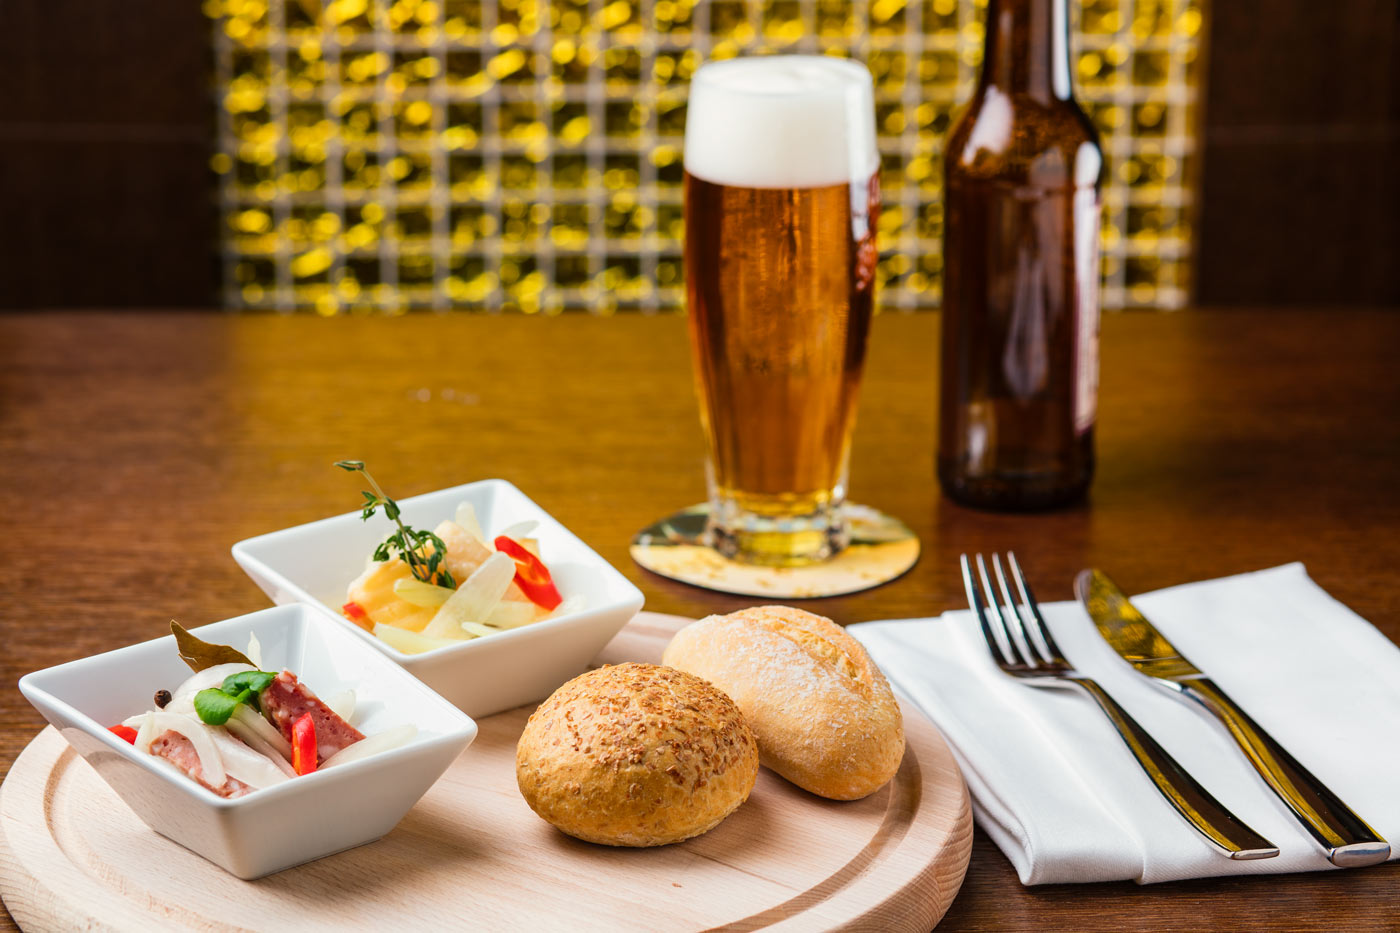 Meat and salad with bread and beer